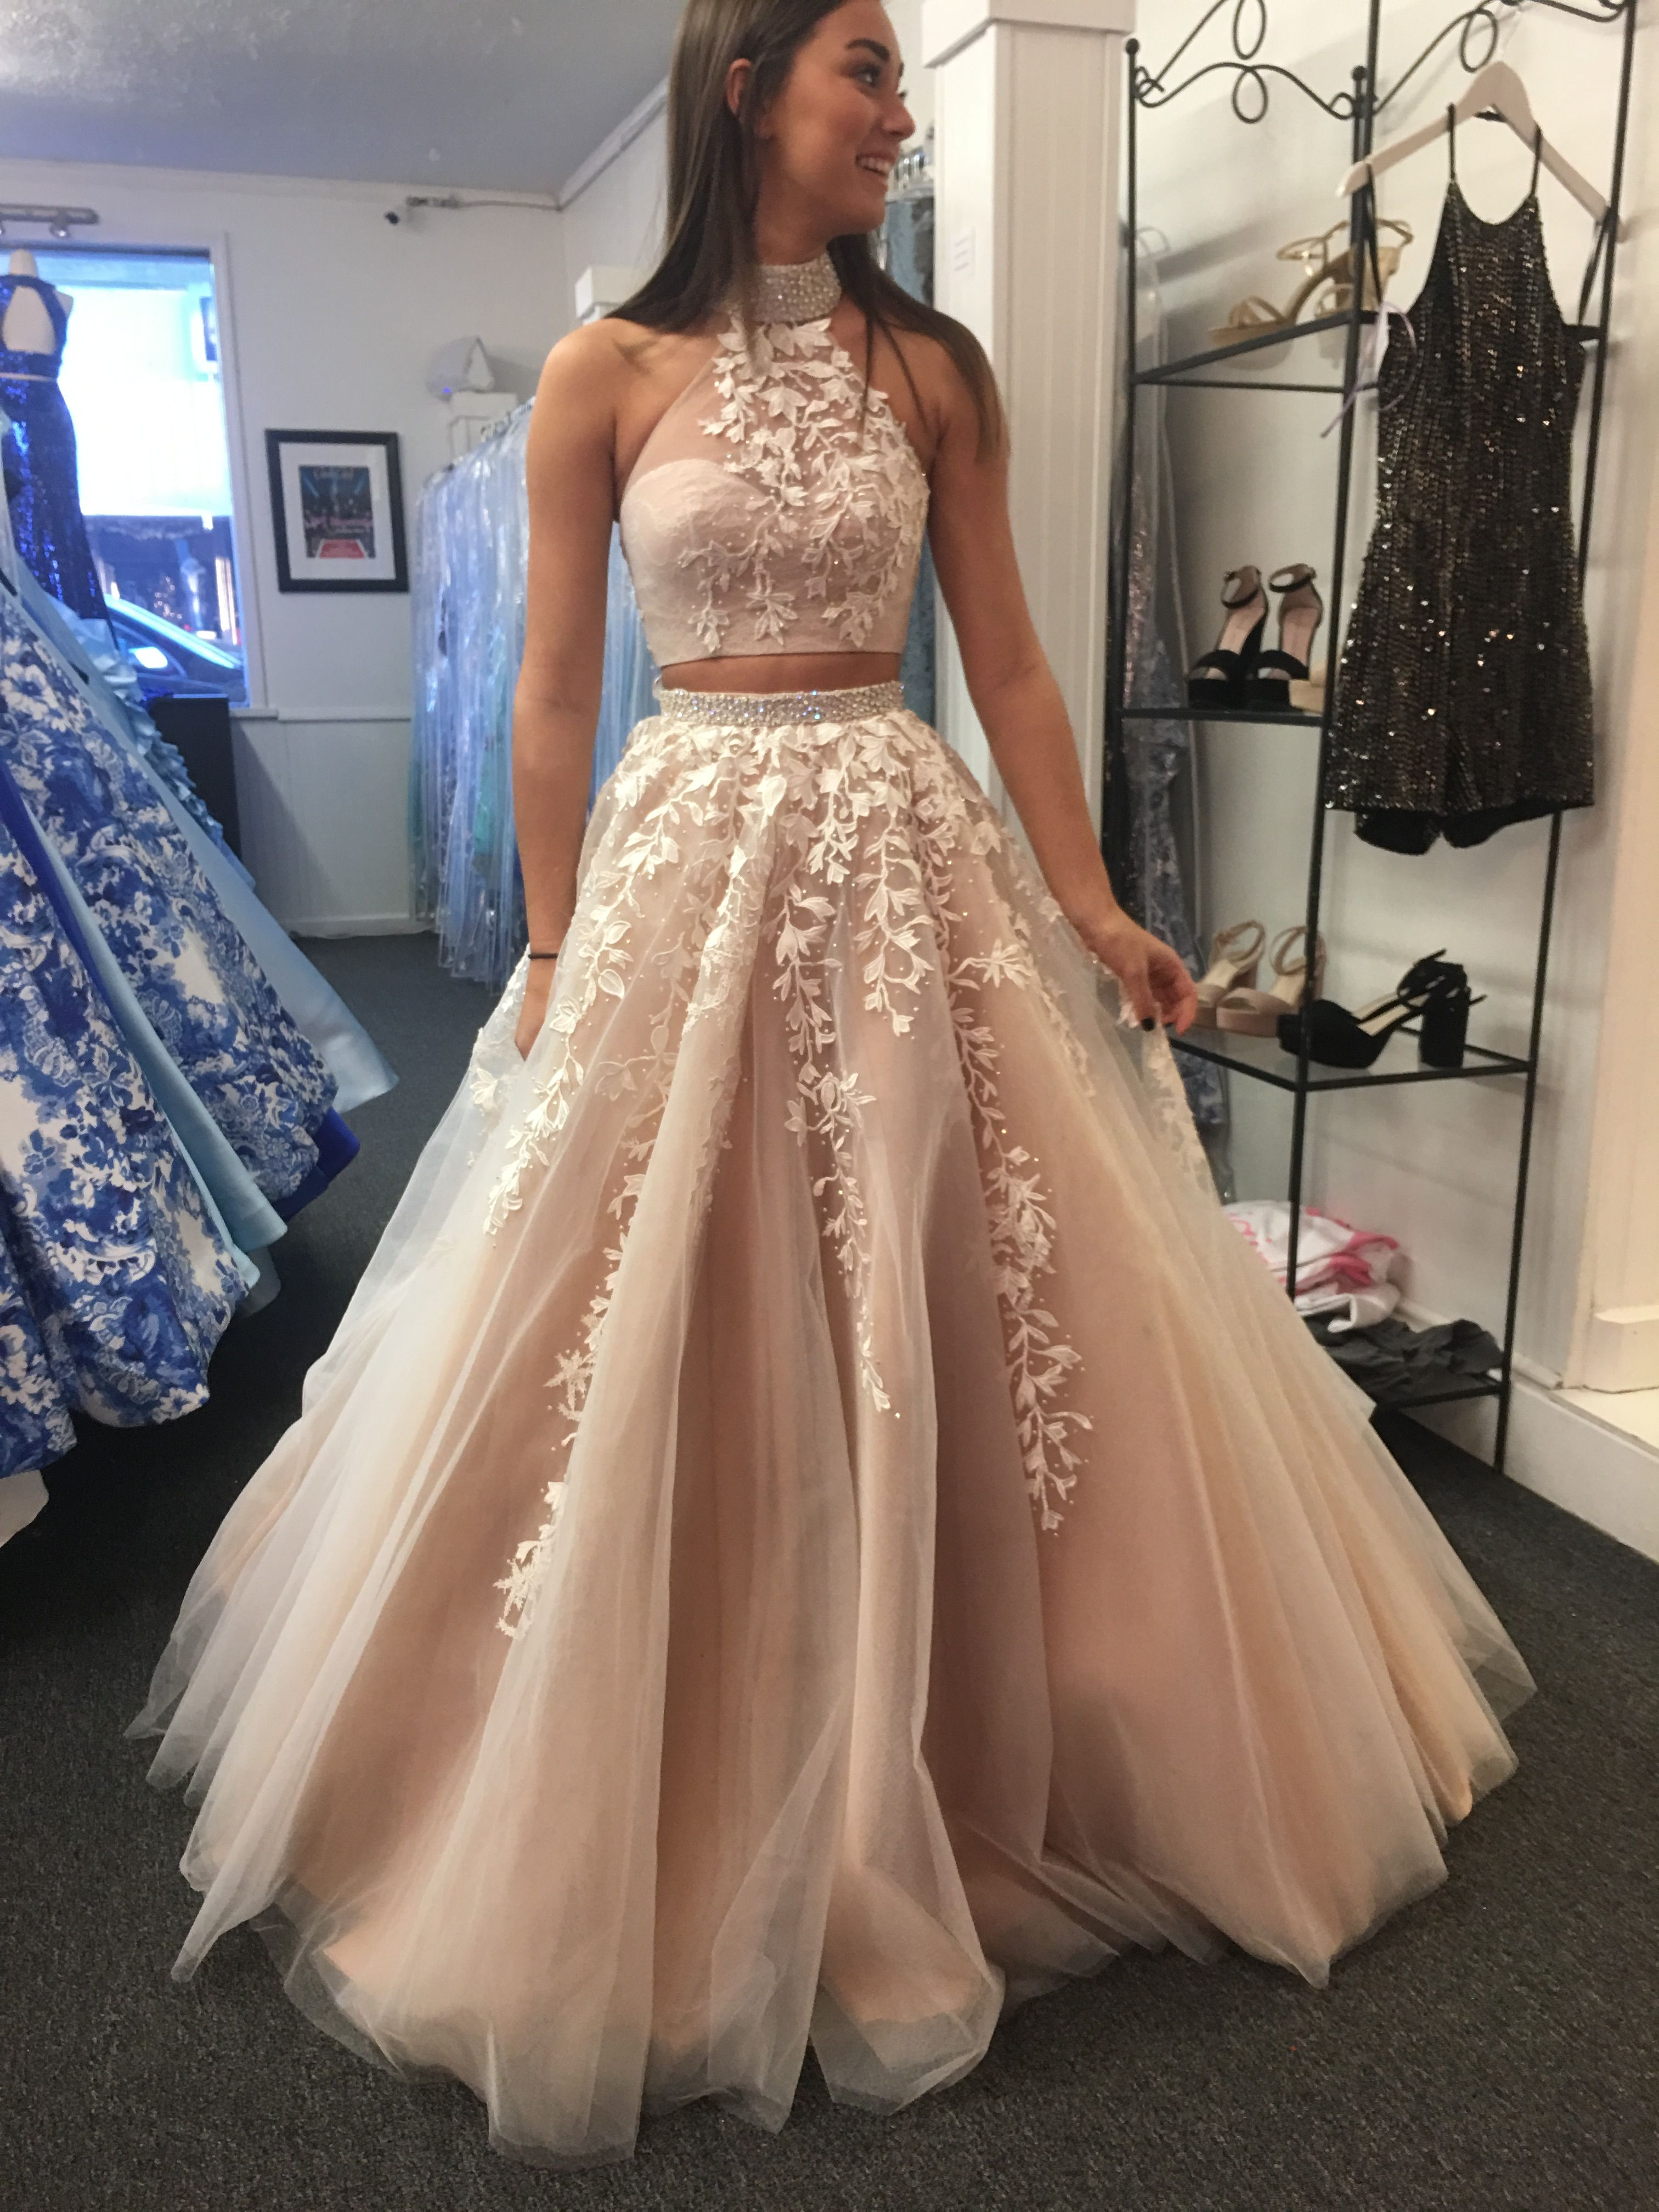 Pin By Chloe Keith On Prom Prom Prom Prom Piece Prom Dress Lace Evening Dresses Cute Prom Dresses [ 4032 x 3024 Pixel ]